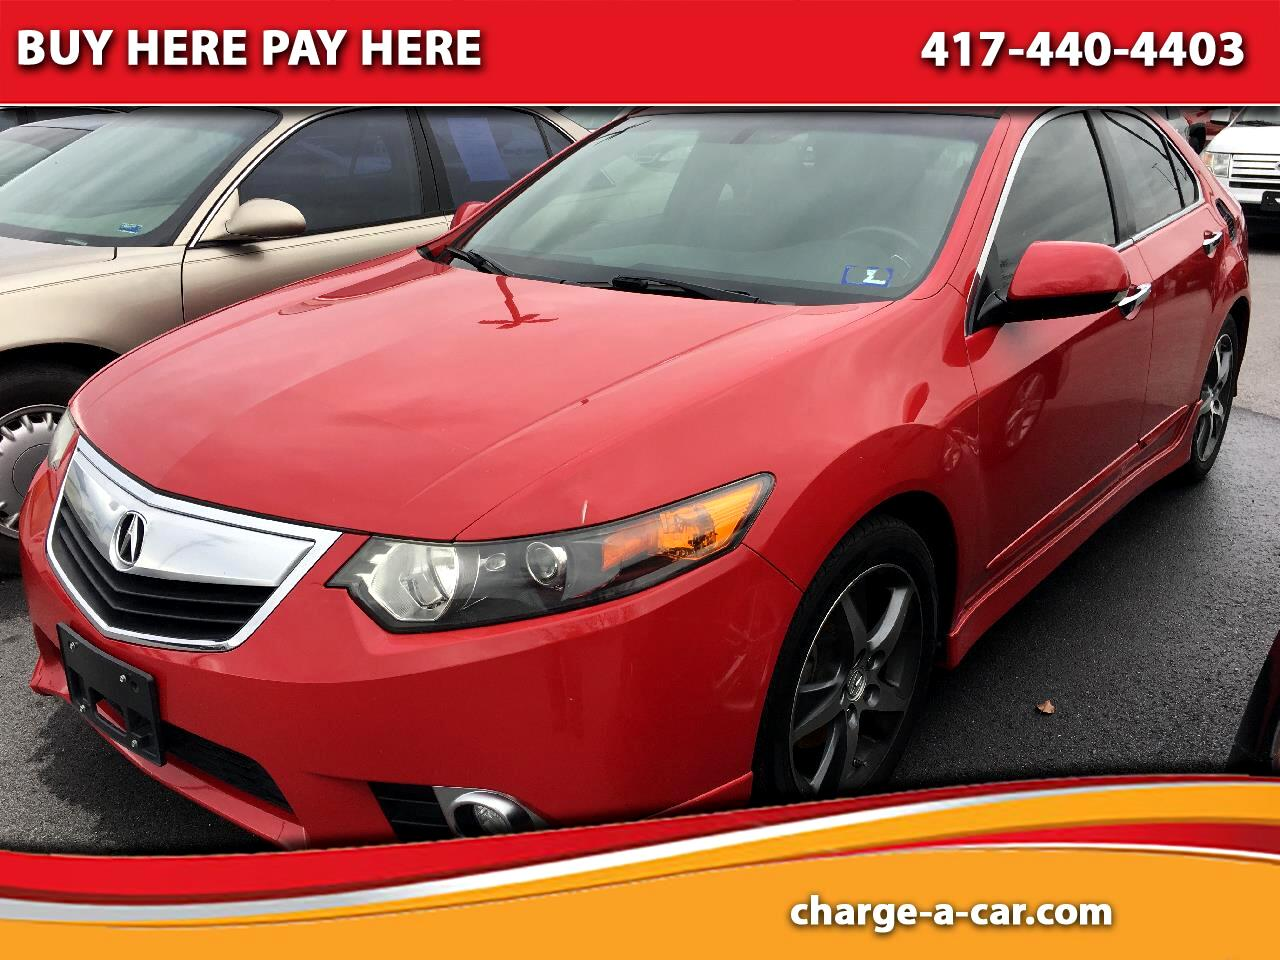 Acura TSX 4dr Sdn I4 Auto Special Edition 2012